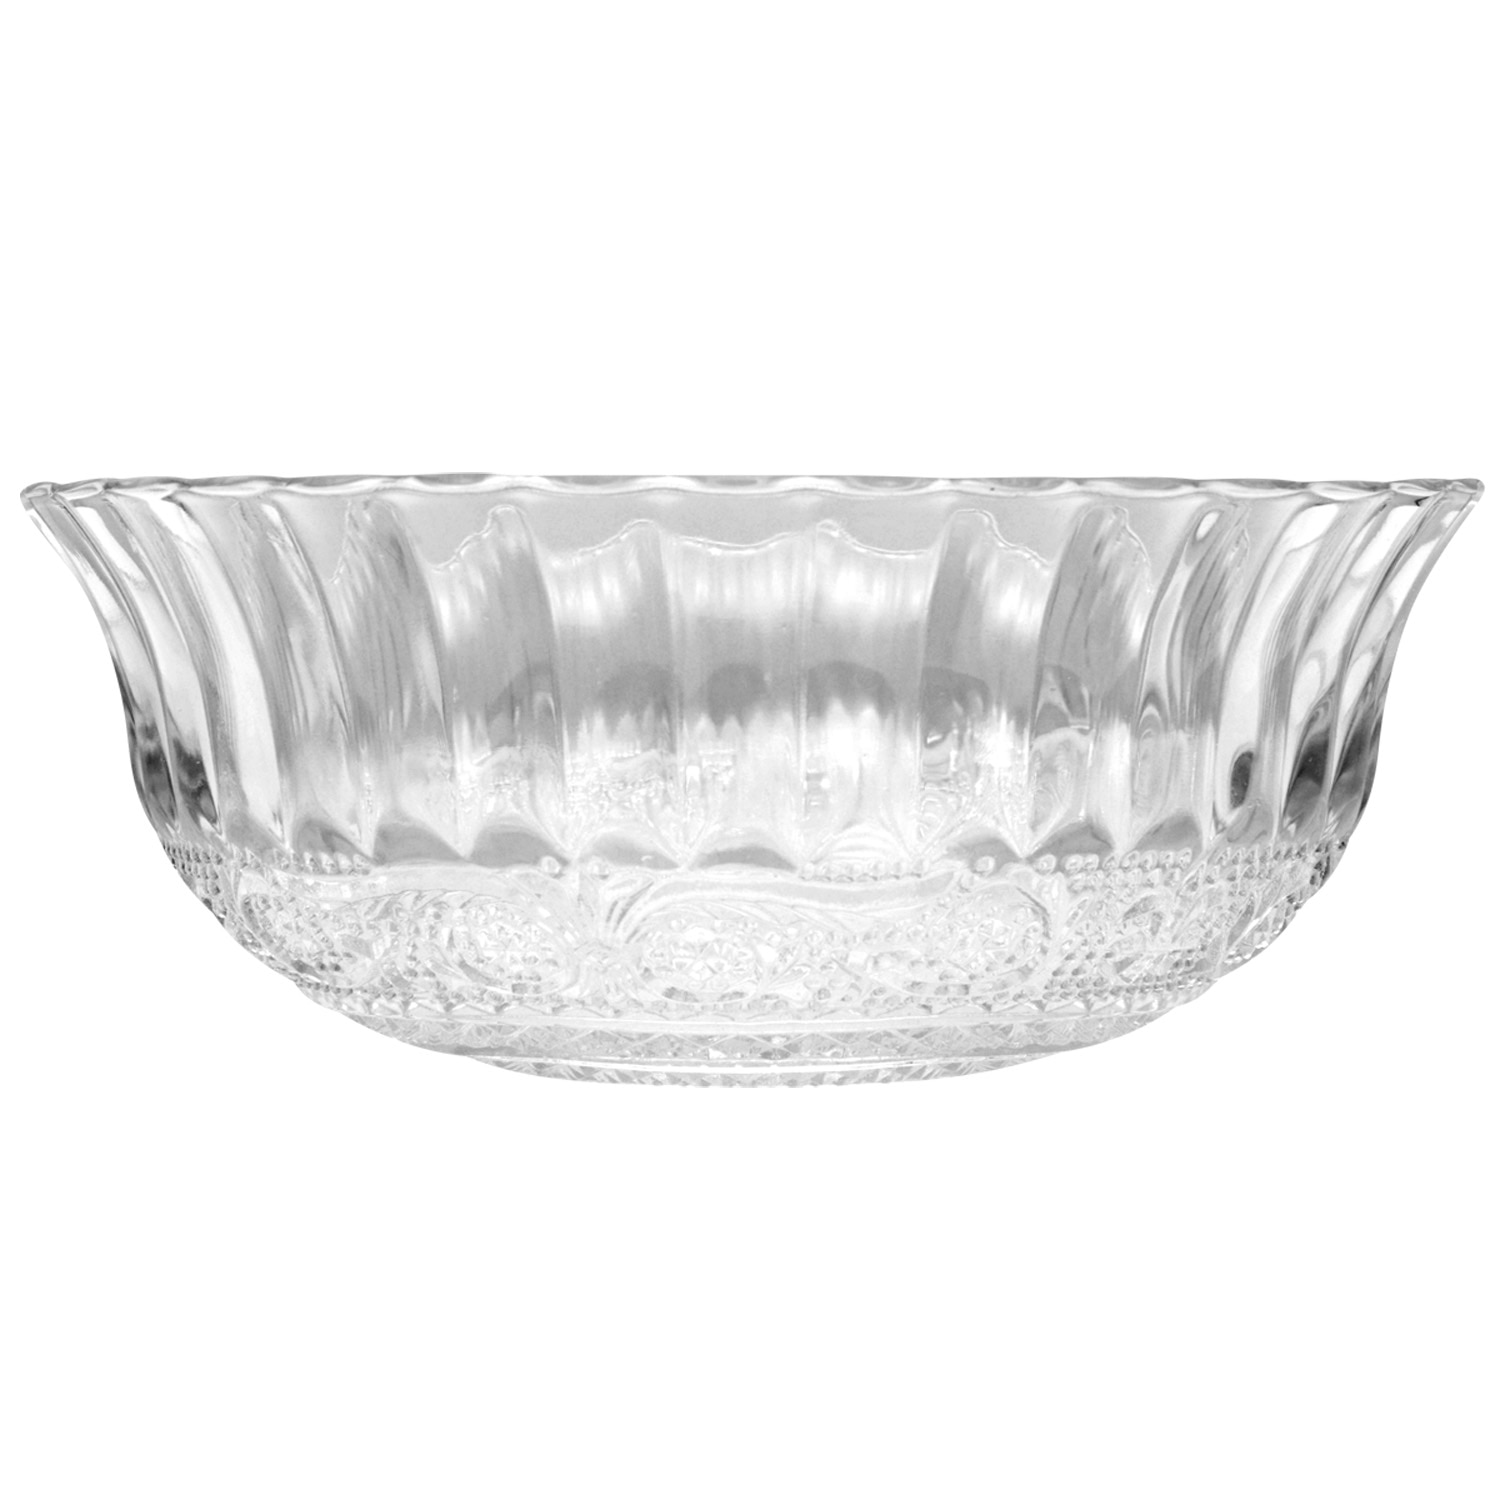 Decorative Clear Glass Bowls 8 In